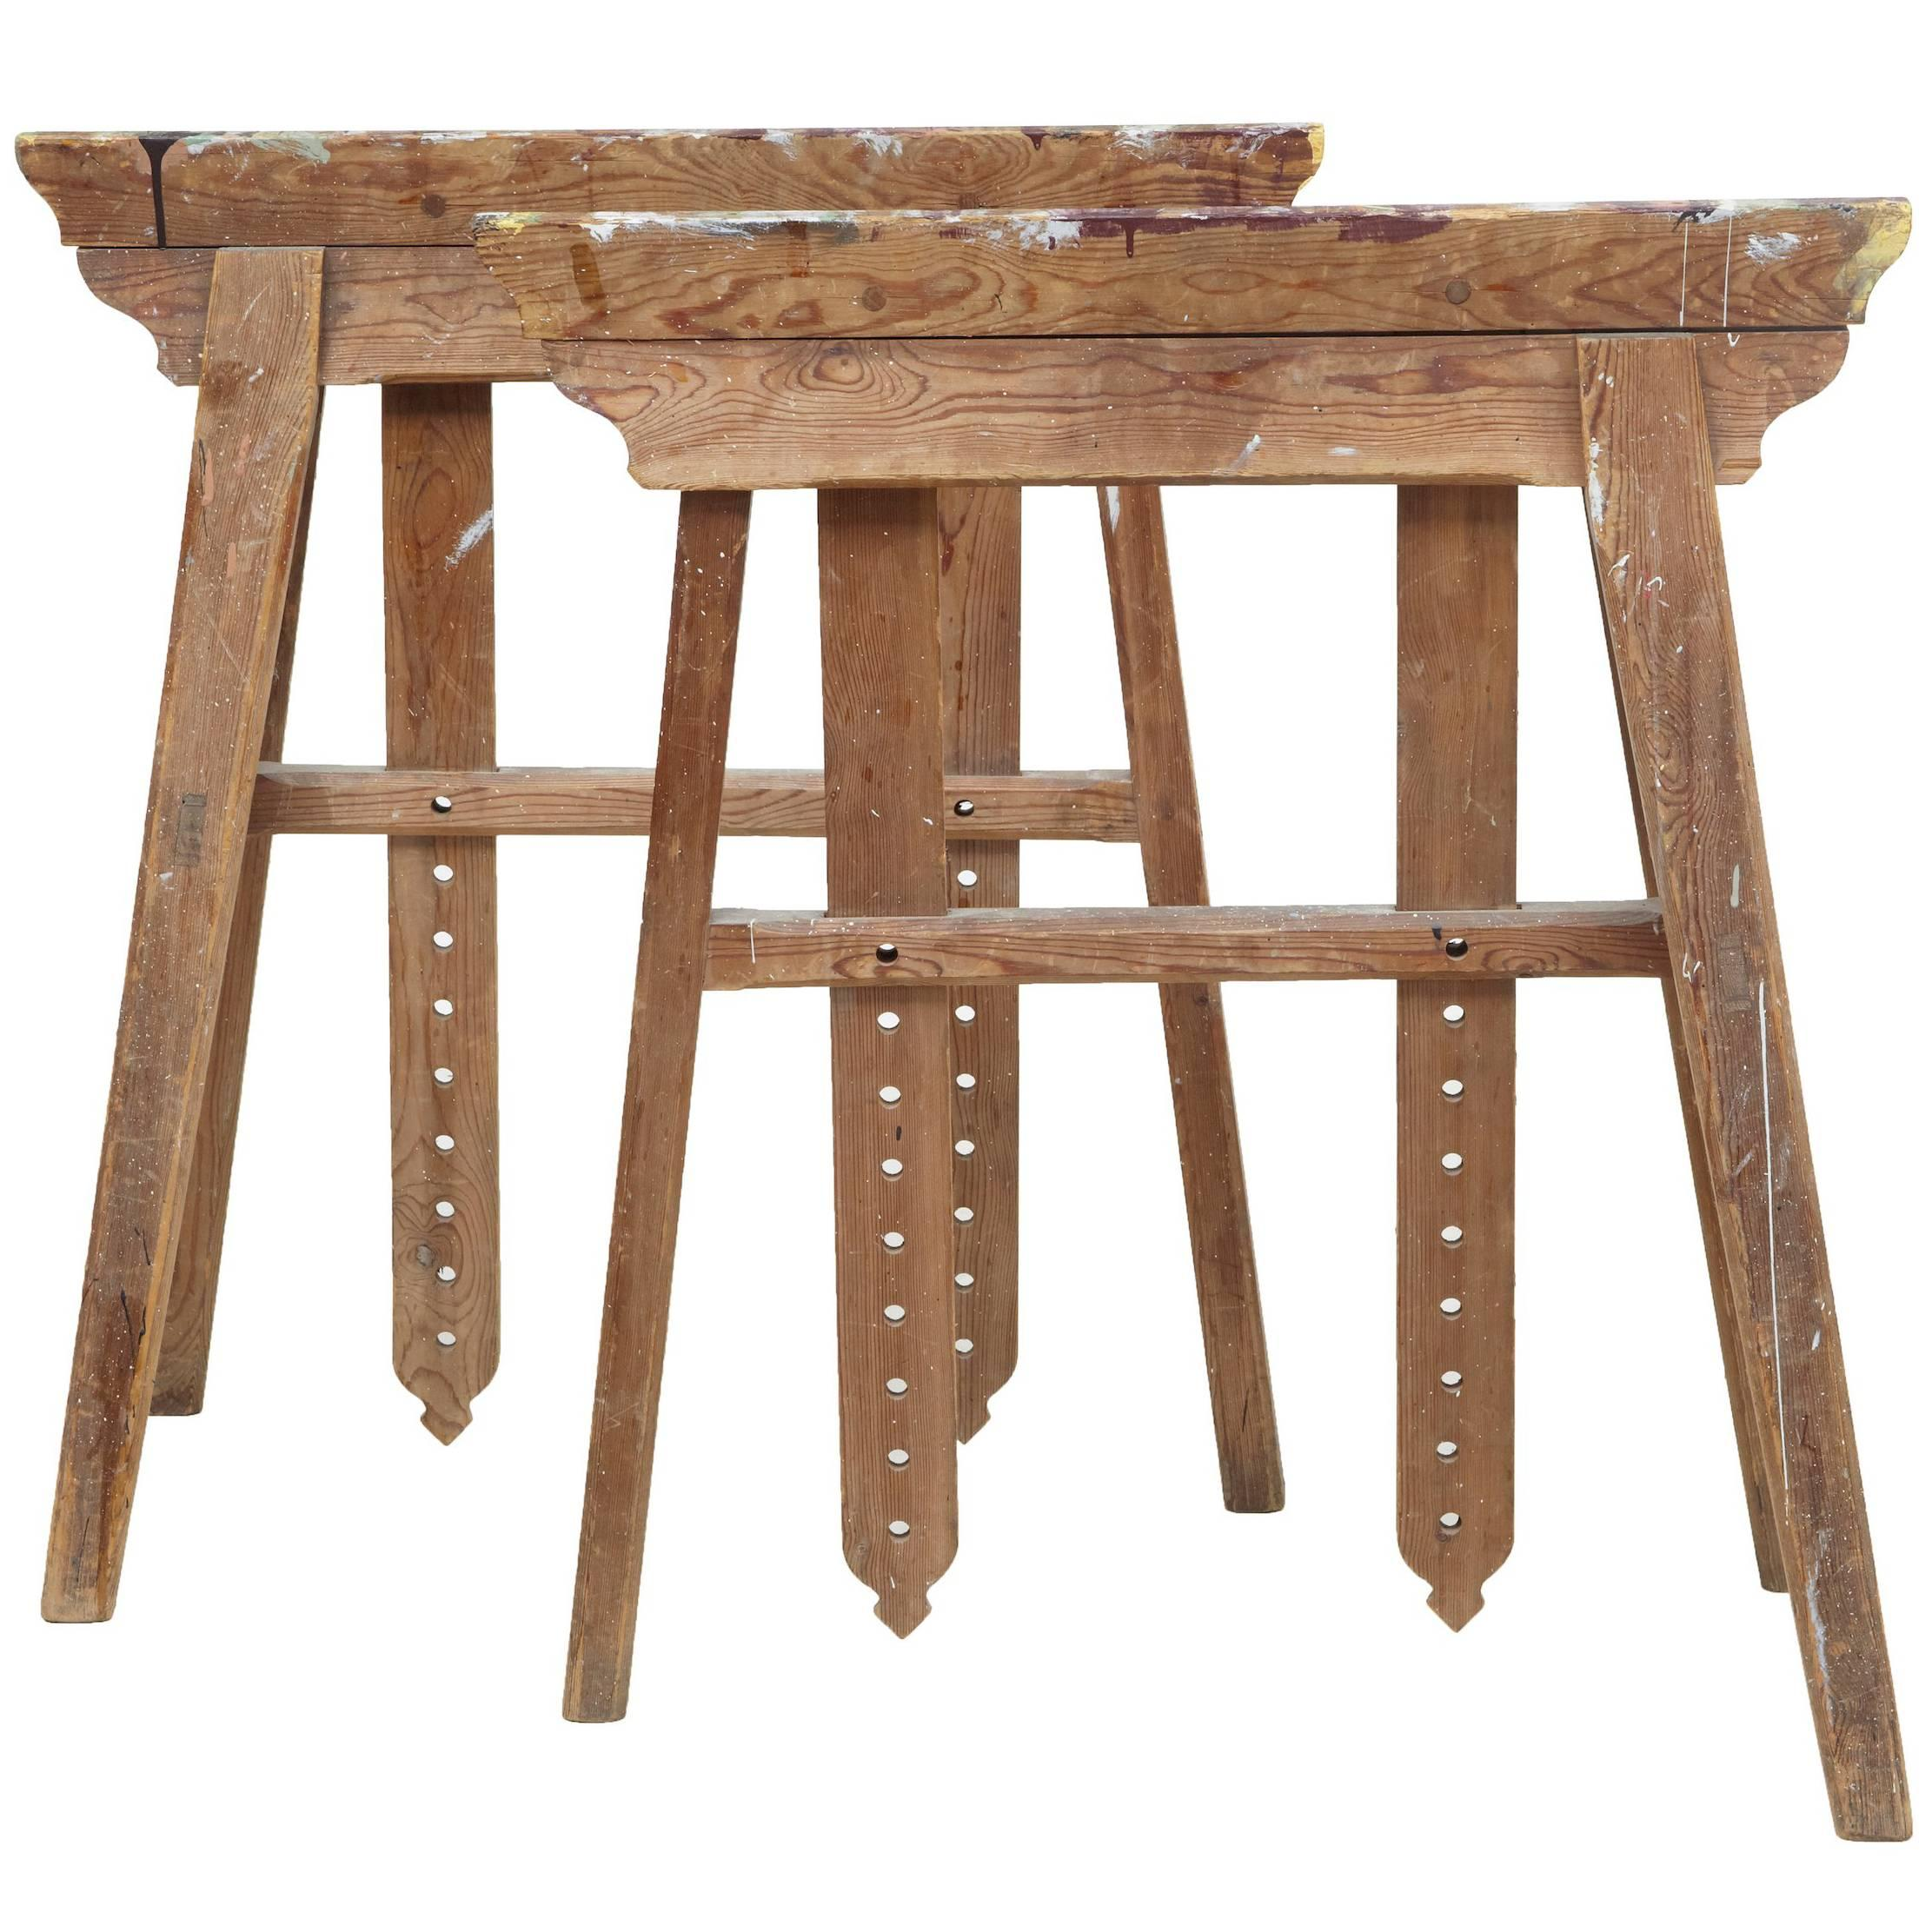 Quality Pair Of Early 20th Century Trestle Table Bases For Sale